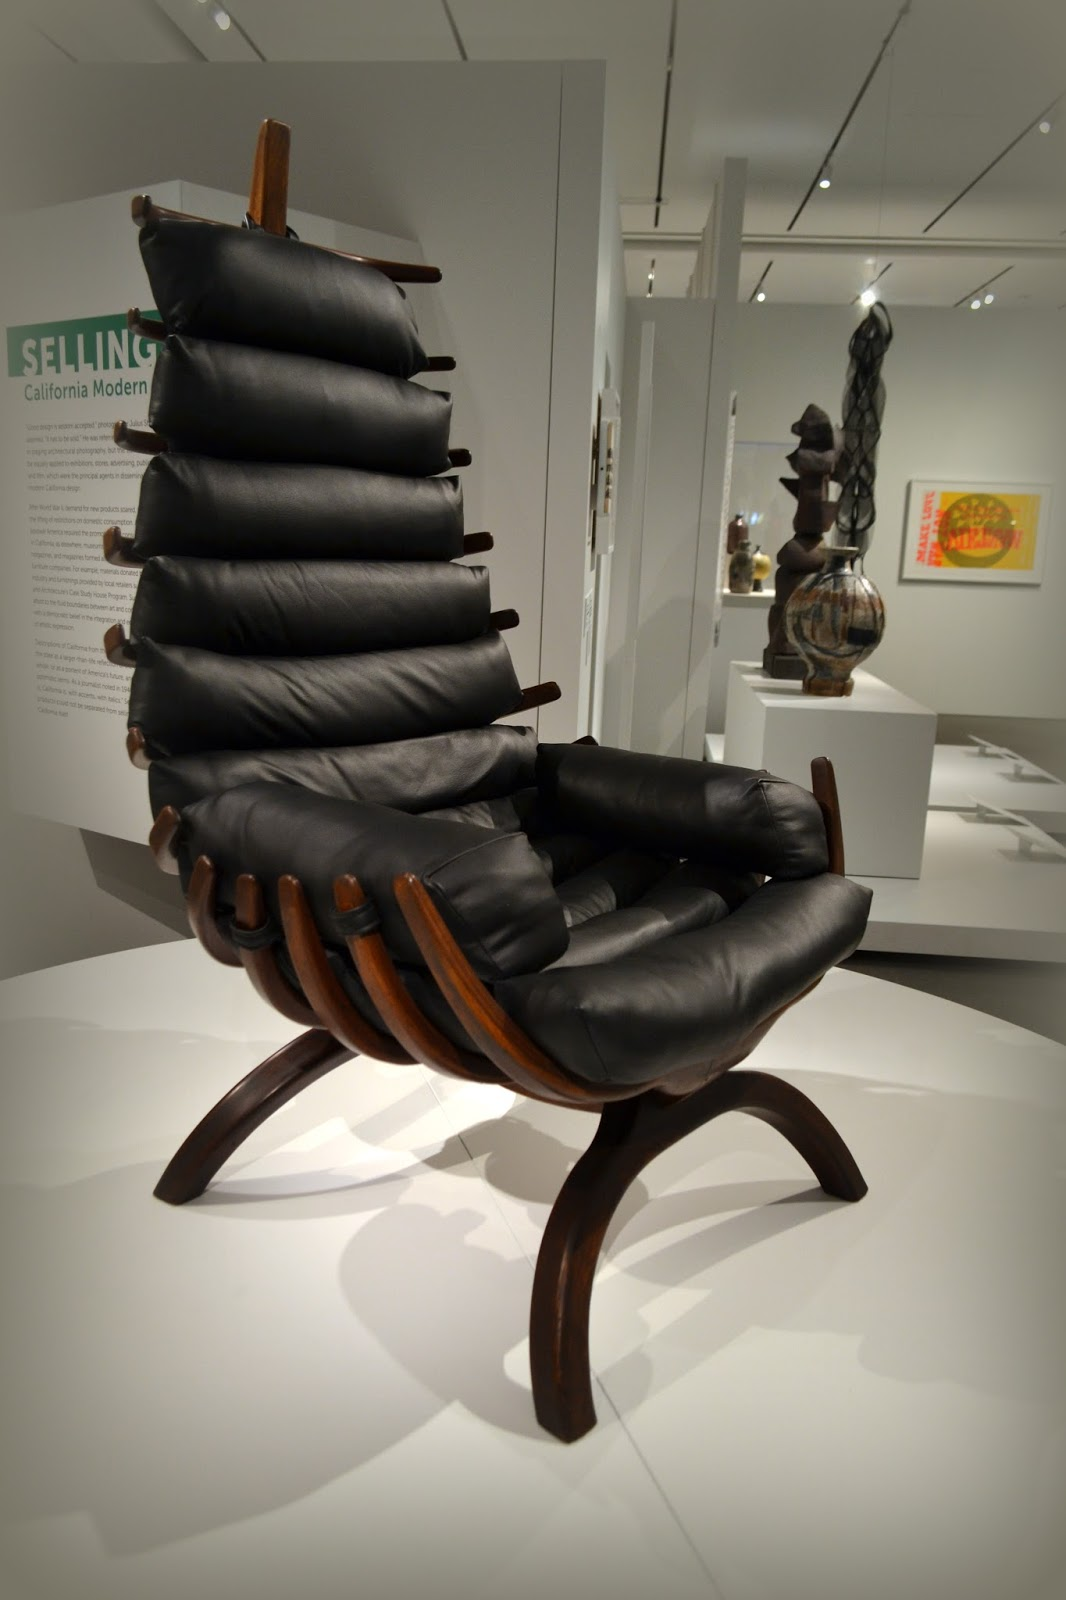 soft, exhibit, california style, pem, peabody essex museum, chair